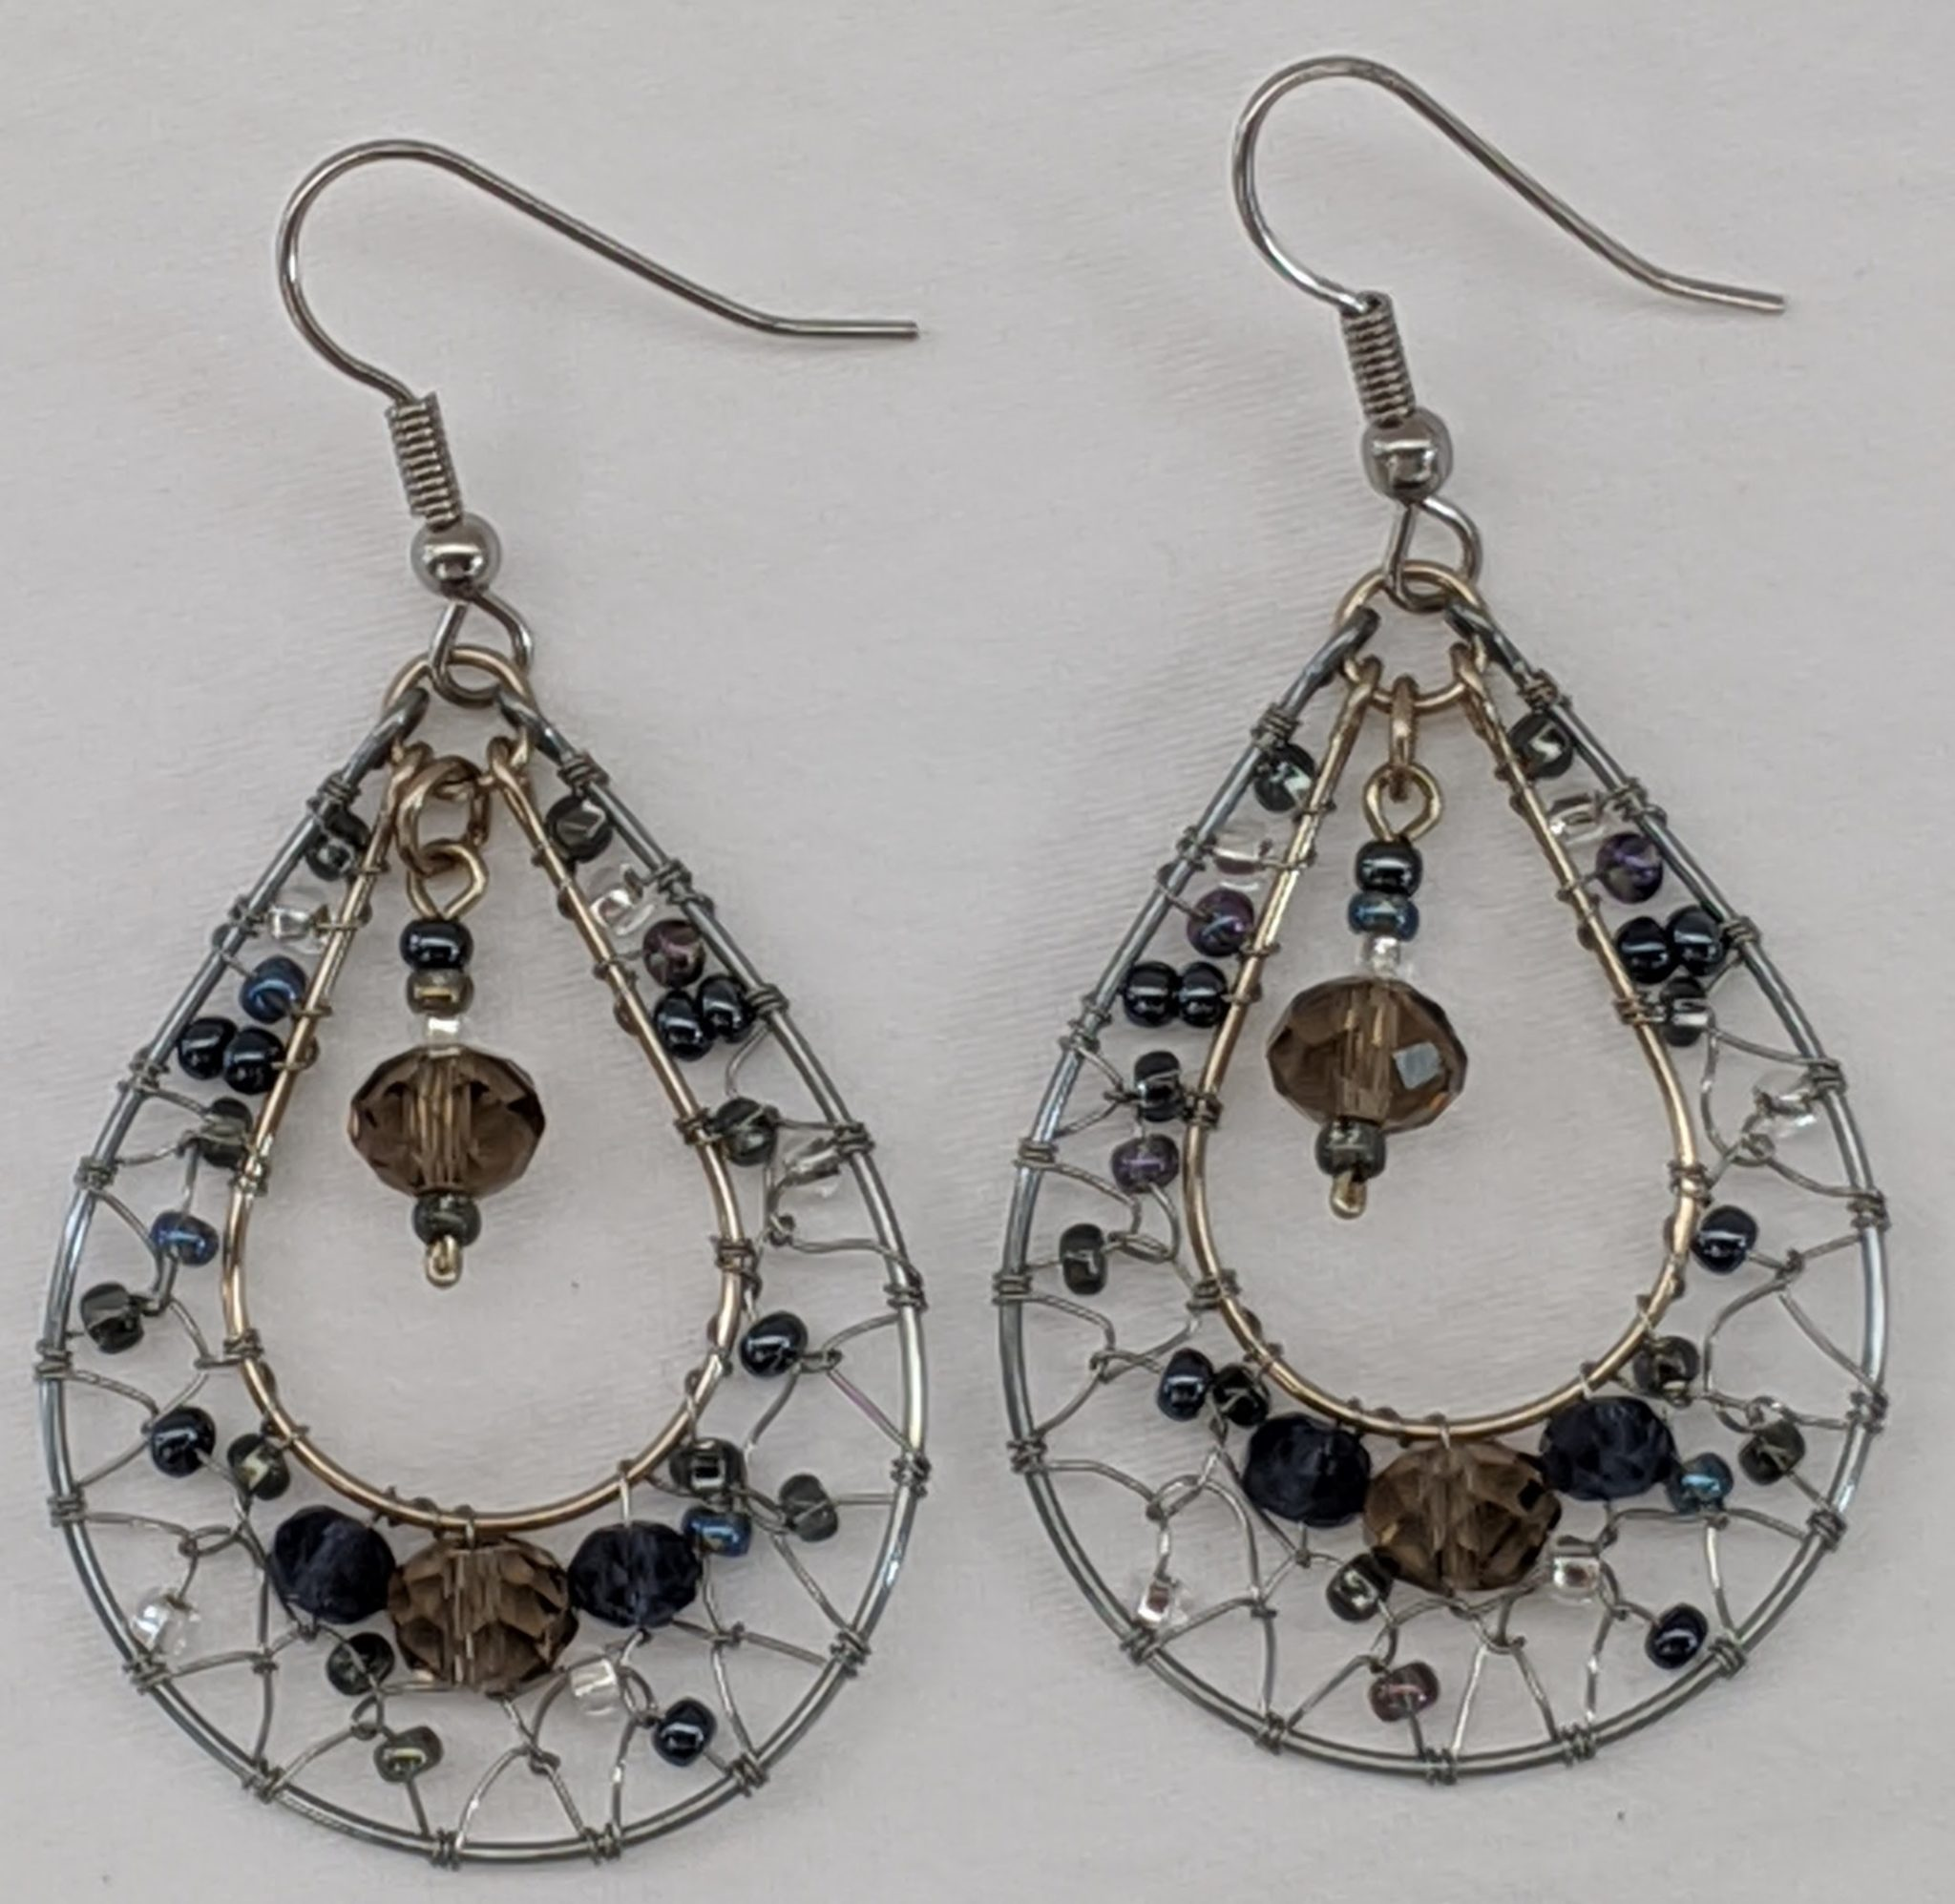 Teardrop Dreamcatcher Earrings - Grays